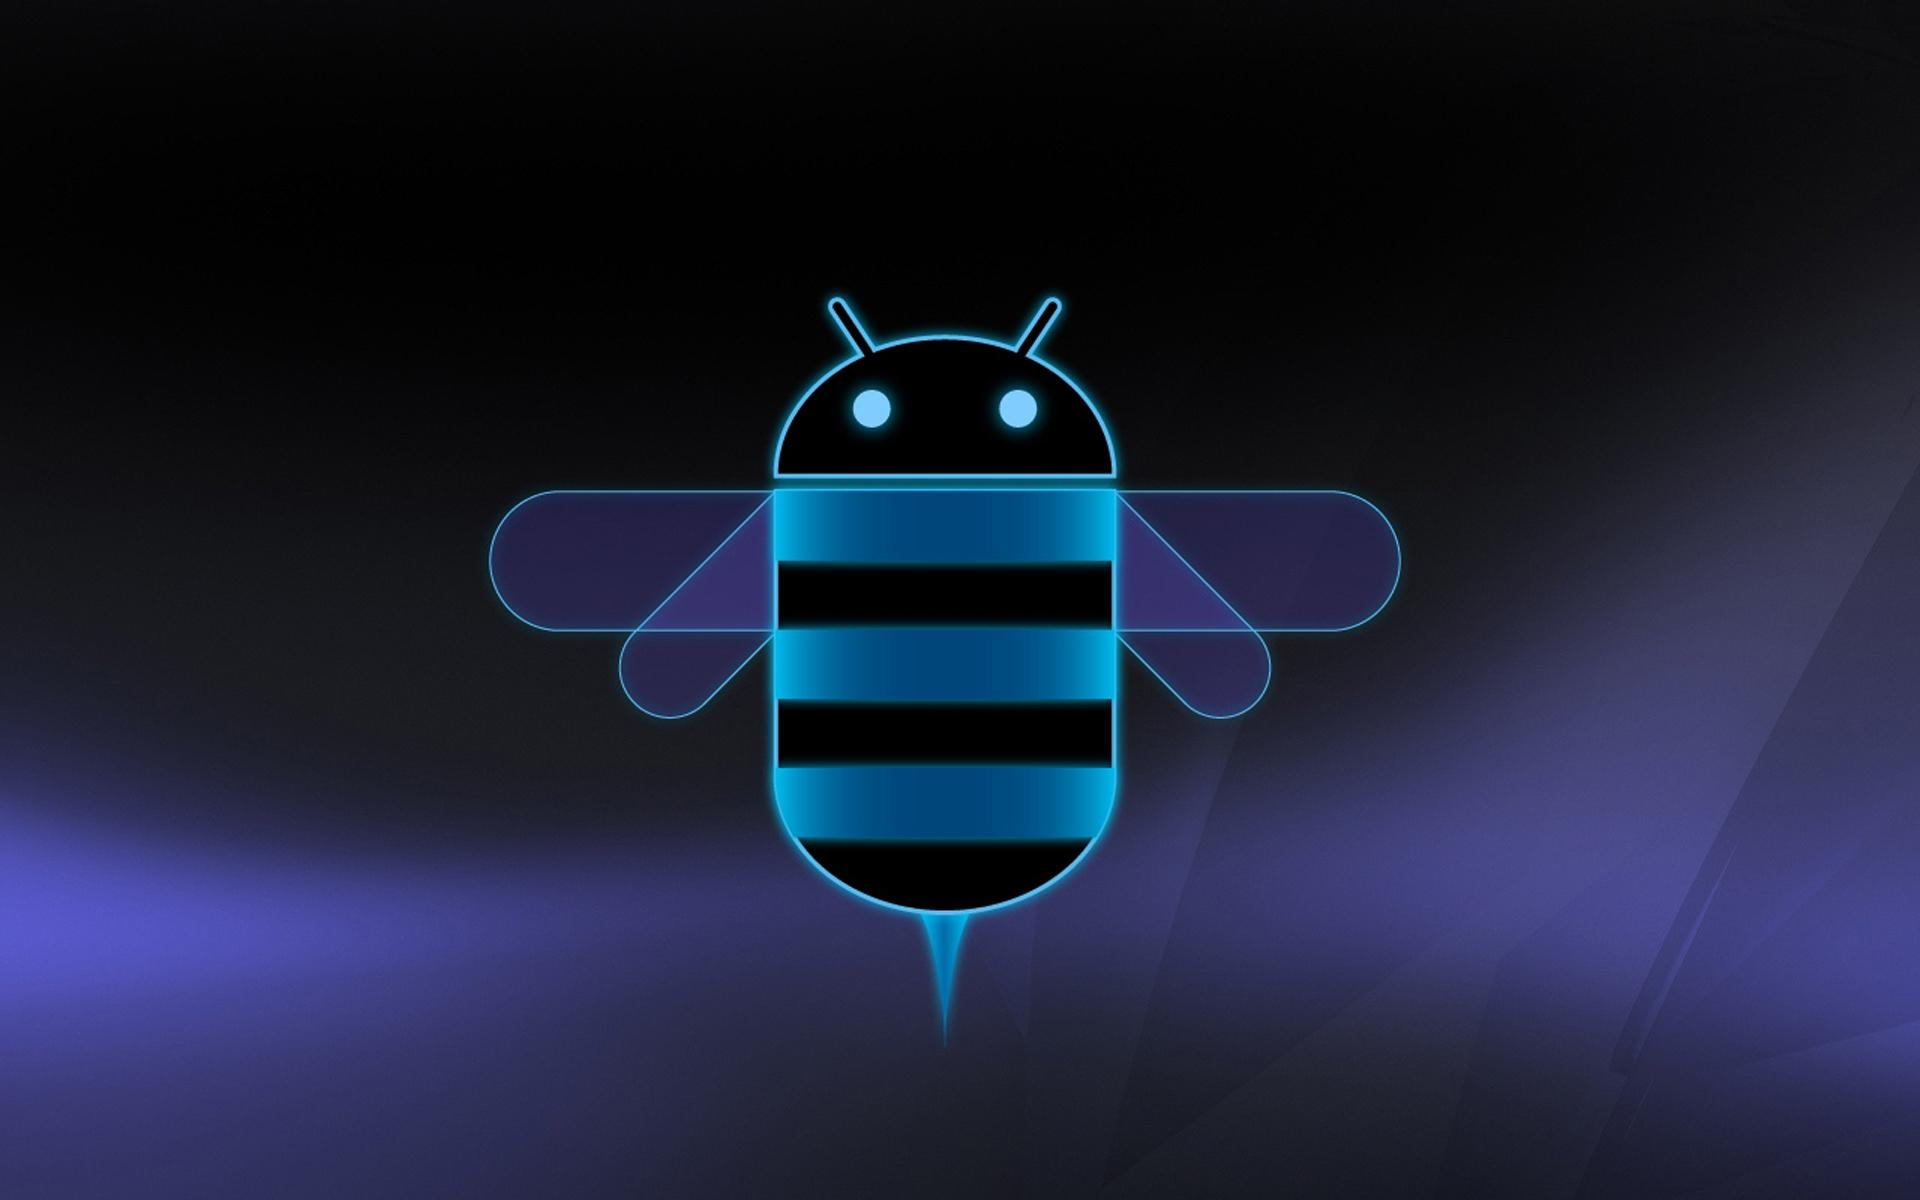 Gambar Logo Android Android Honey B HD